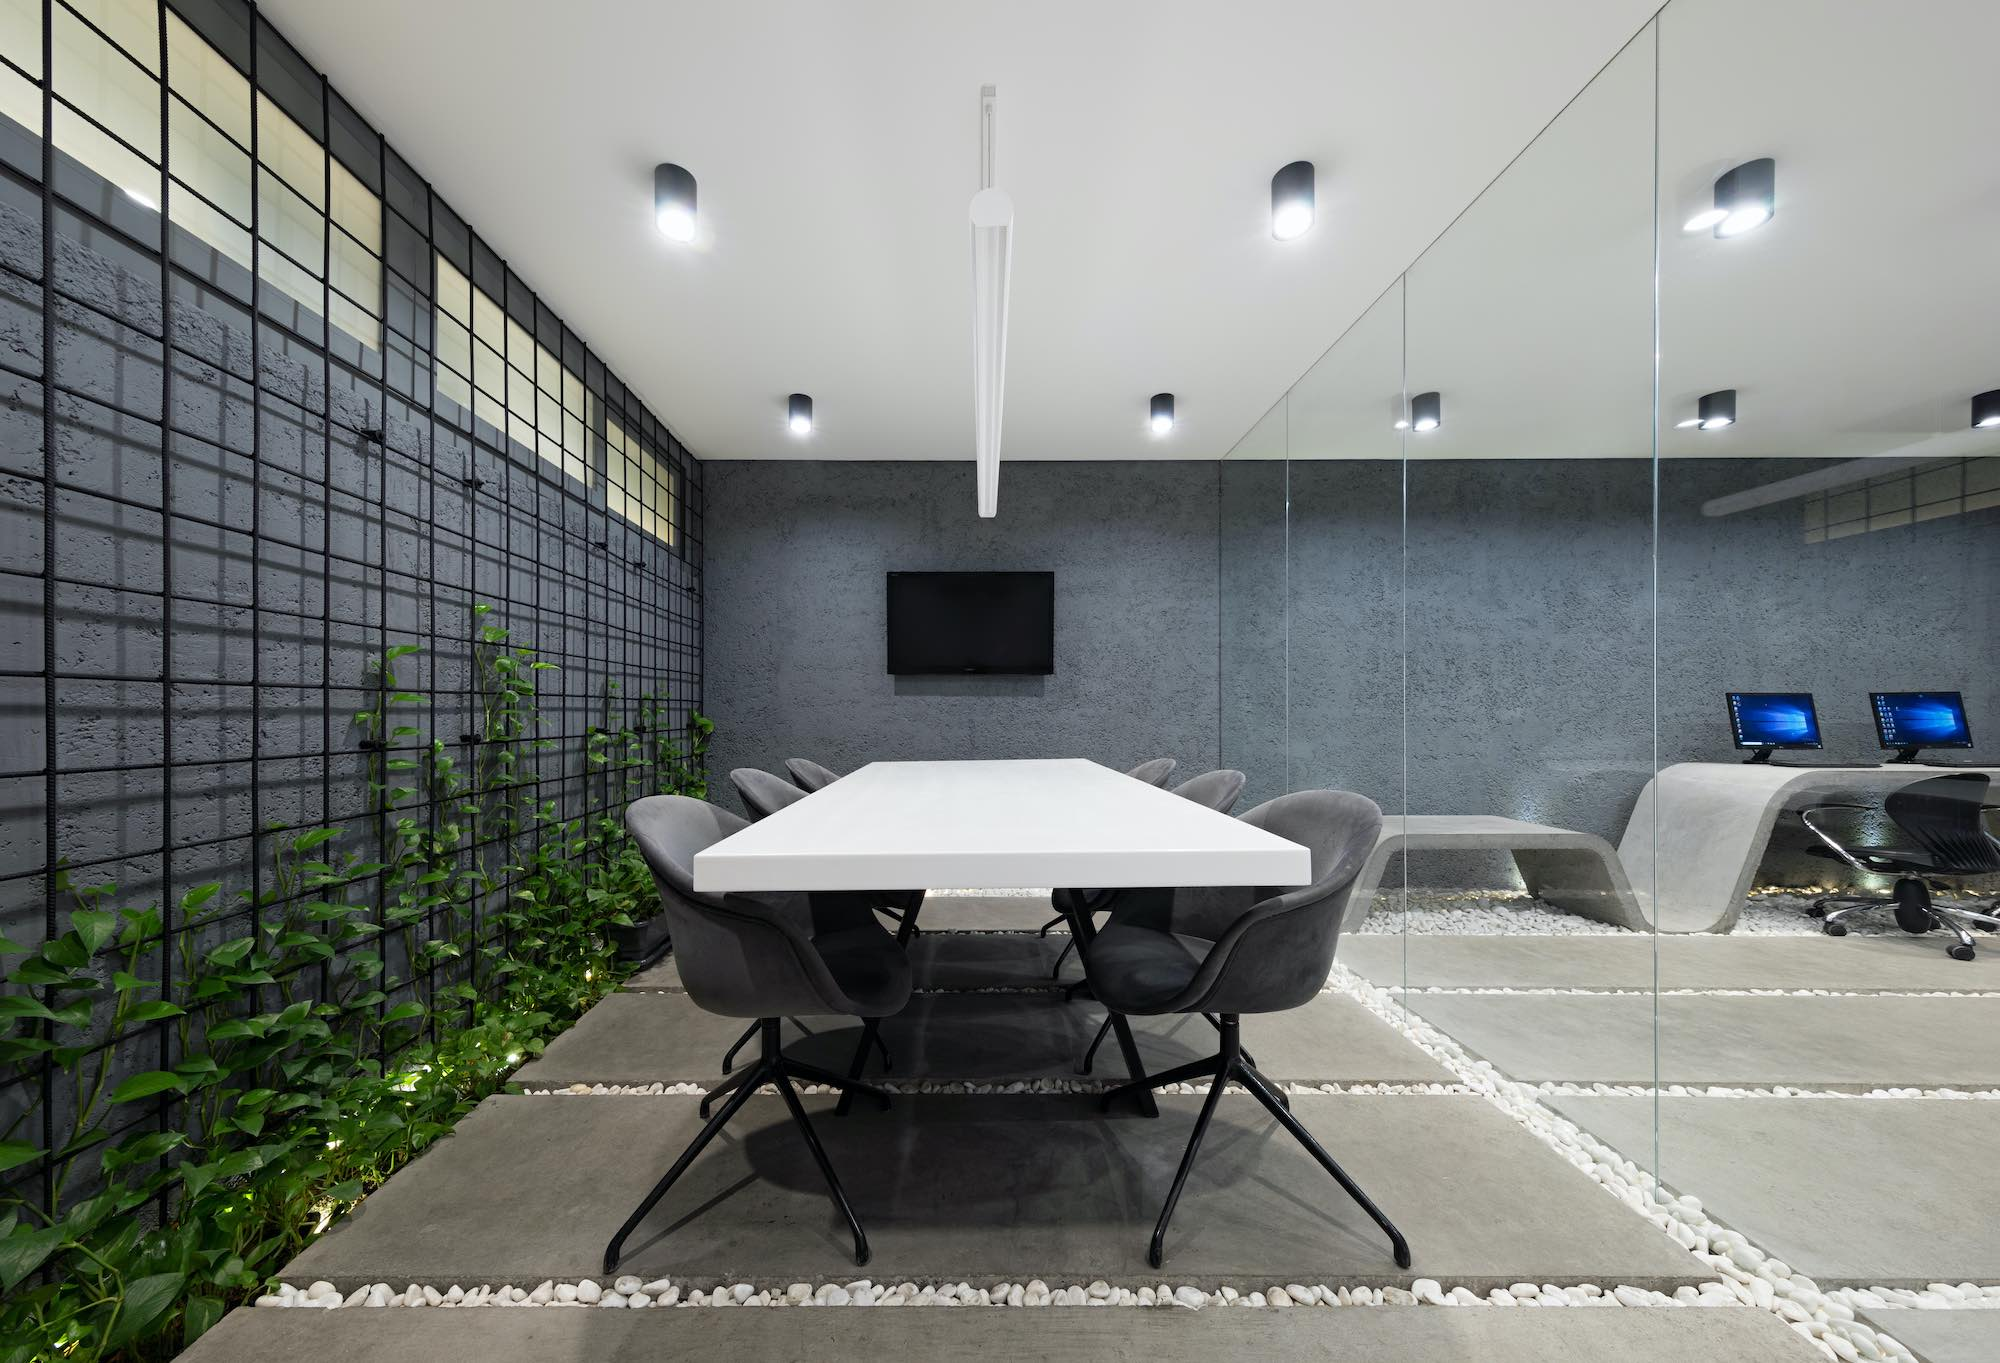 a meeting table on a concrete floor